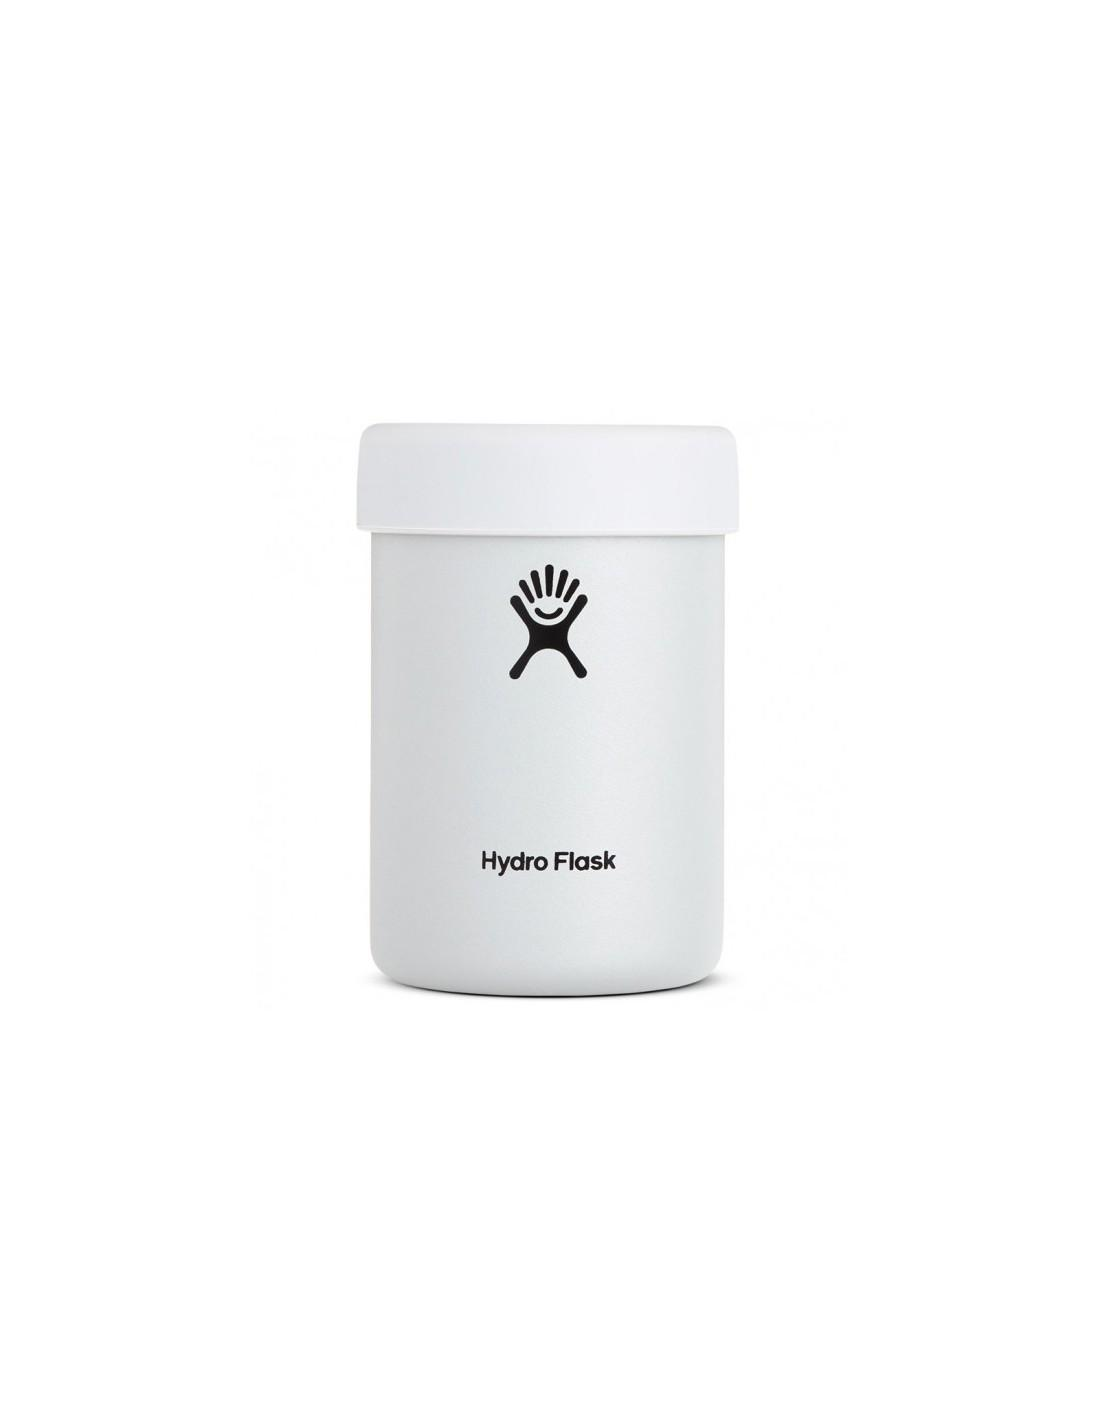 Hydro Flask 12 oz (355 ml) Cooler Cup